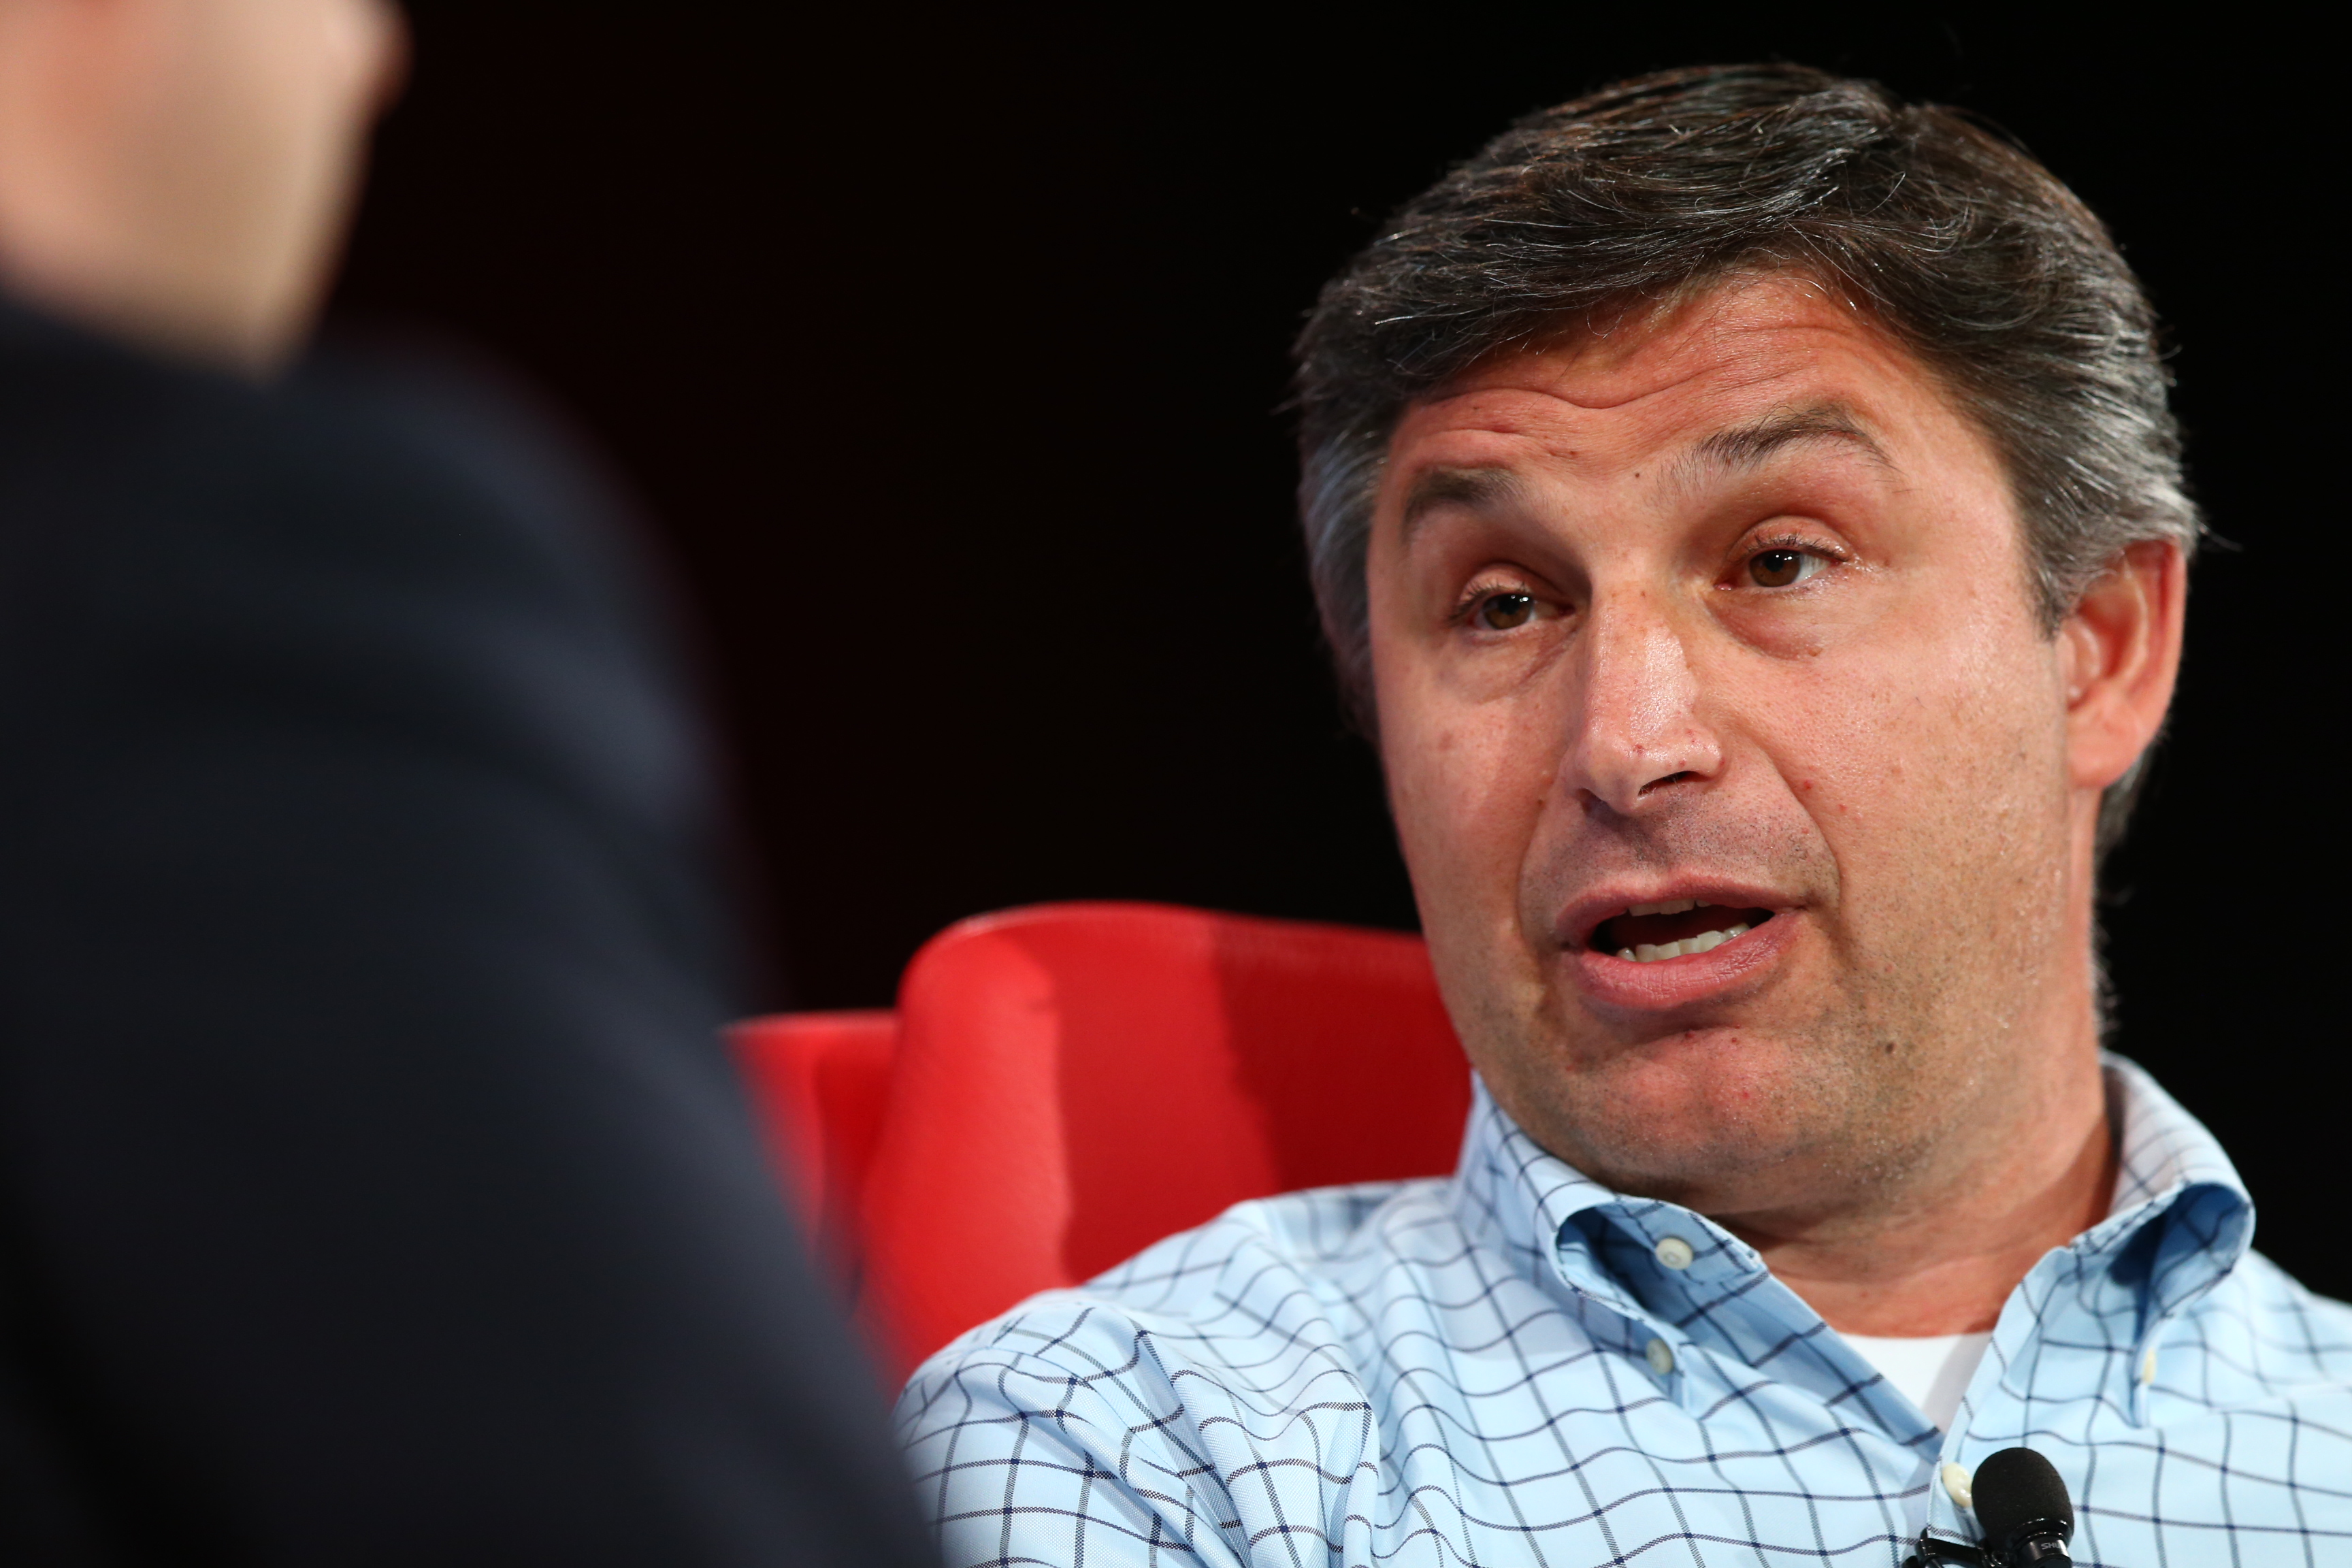 Anthony Noto onstage at the Code Conference